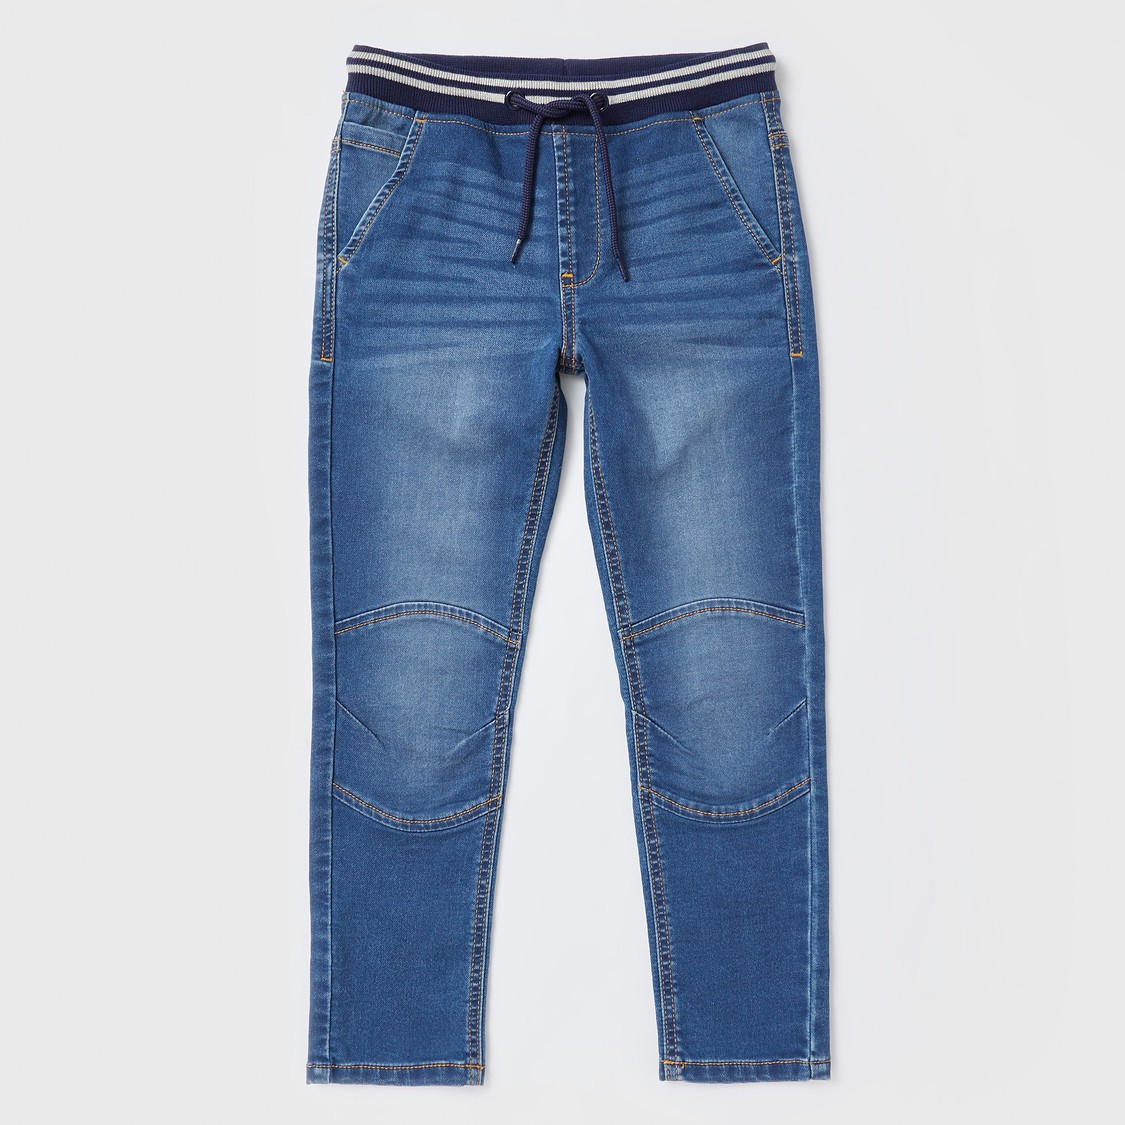 Full Length Denim Joggers with Drawstring Closure and Pockets